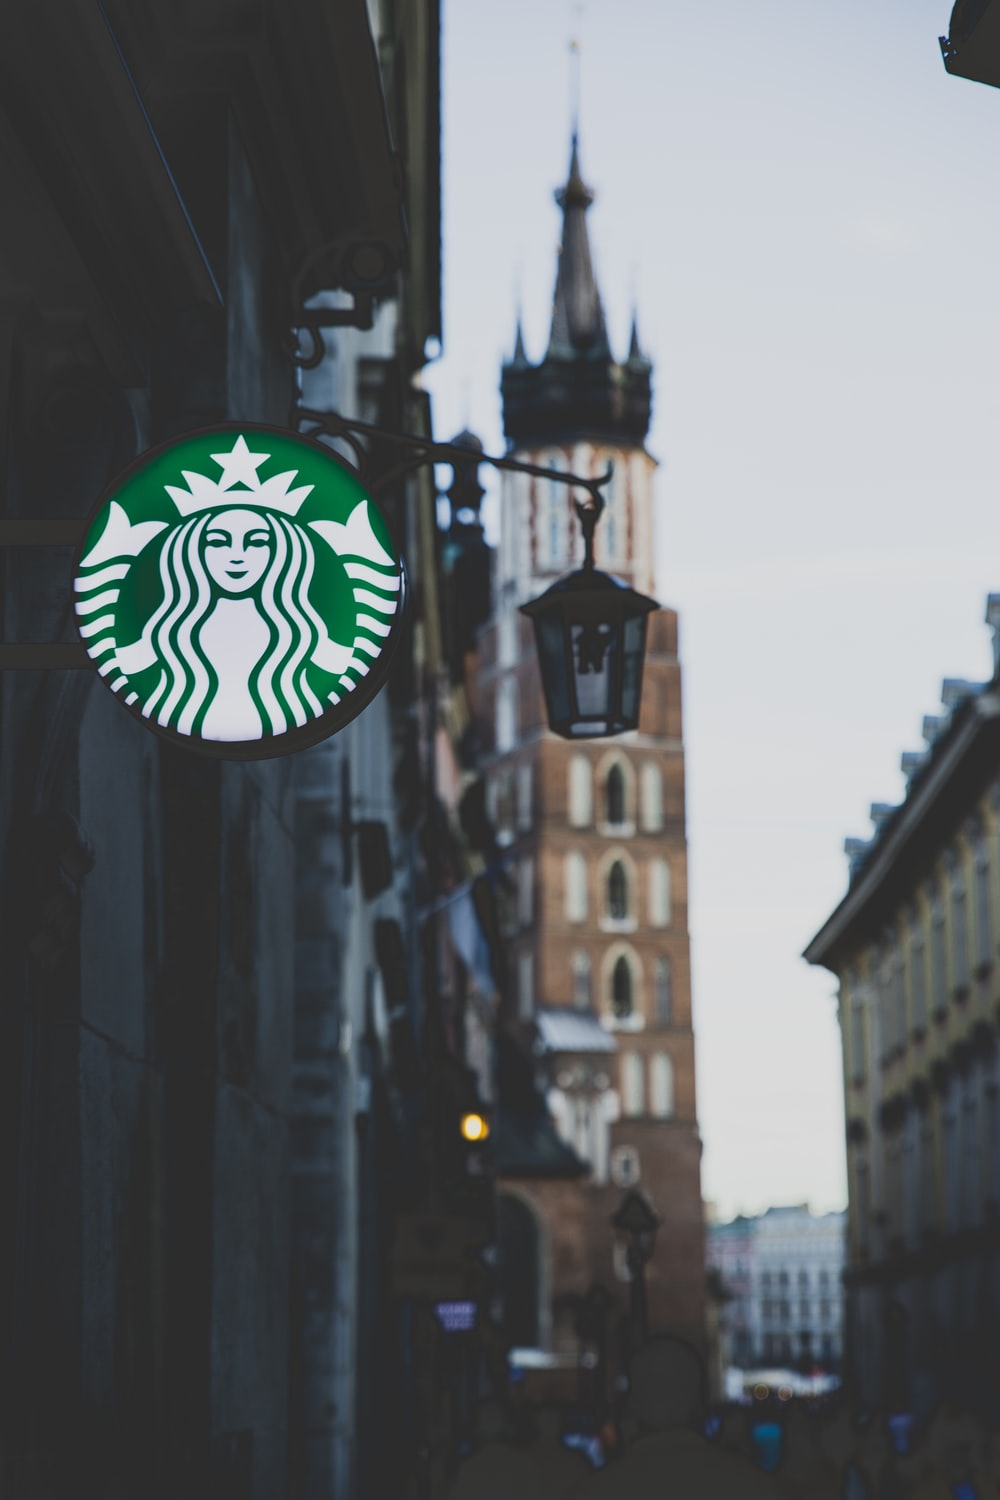 500 Starbucks Pictures Download Free Images On Unsplash